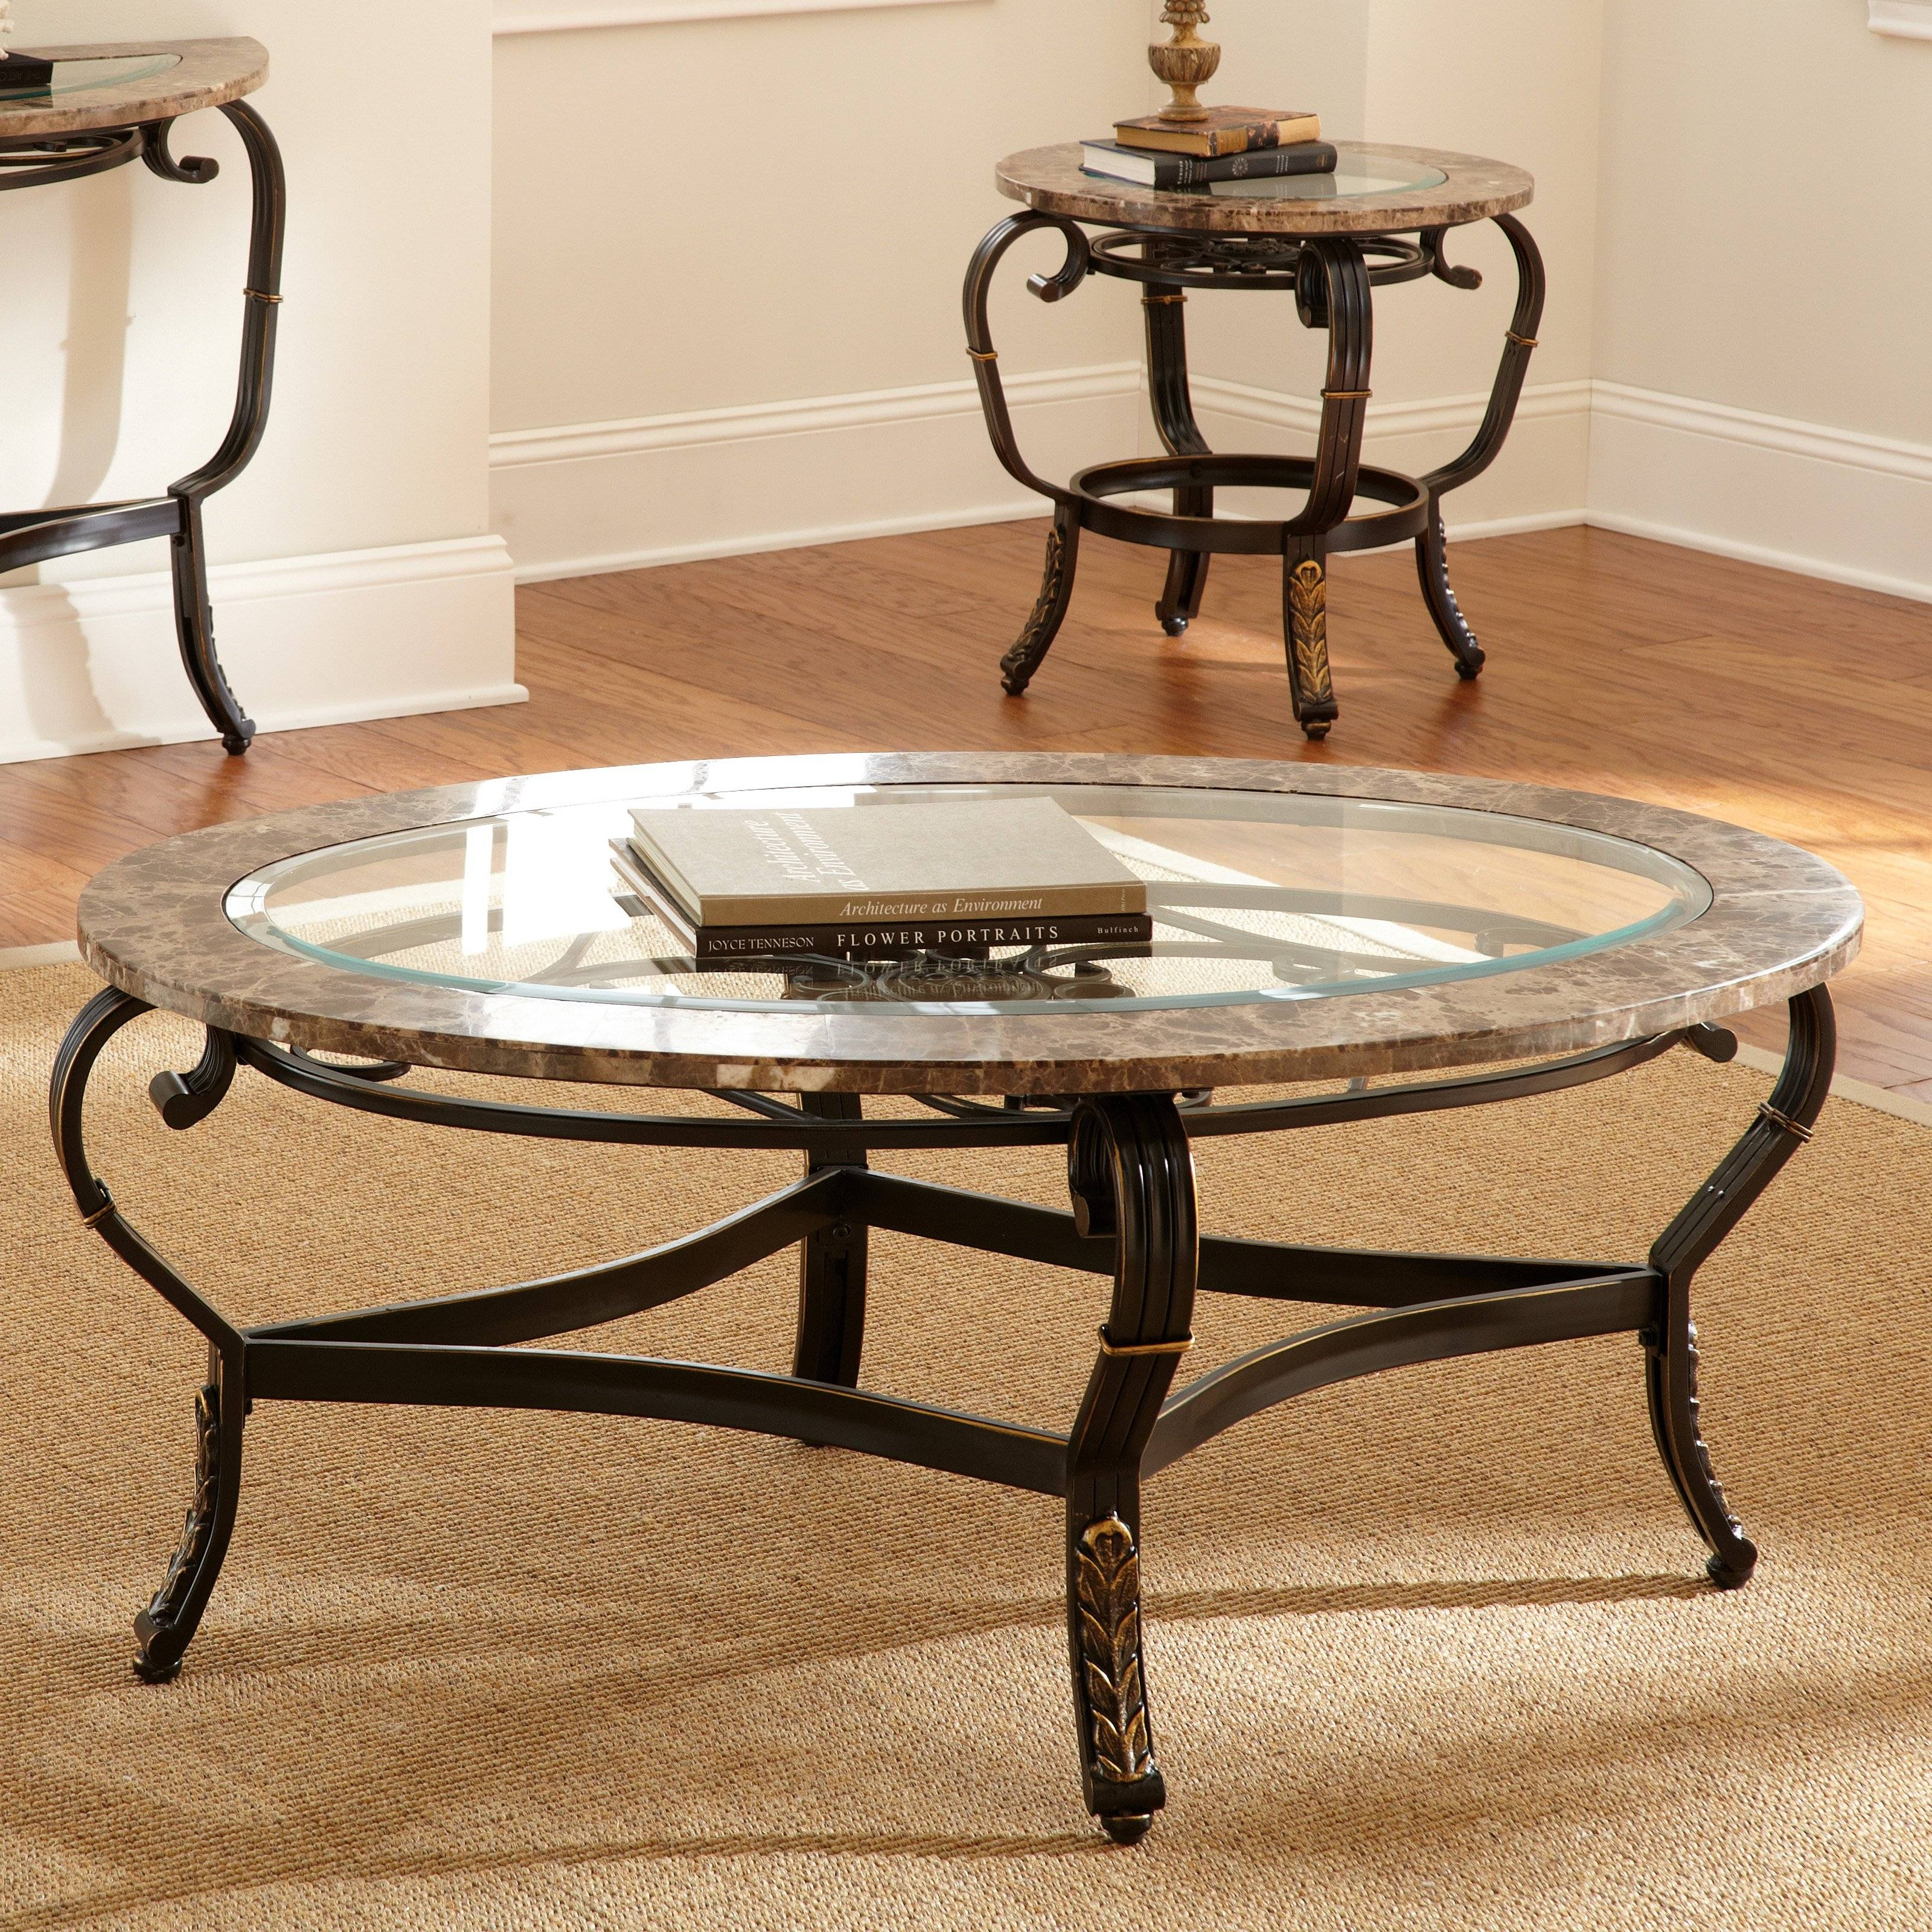 Great Marble Base Glass Top Coffee Table 23 For Home Design Ideas in Marble Base Glass Top Coffee Table (Image 8 of 15)